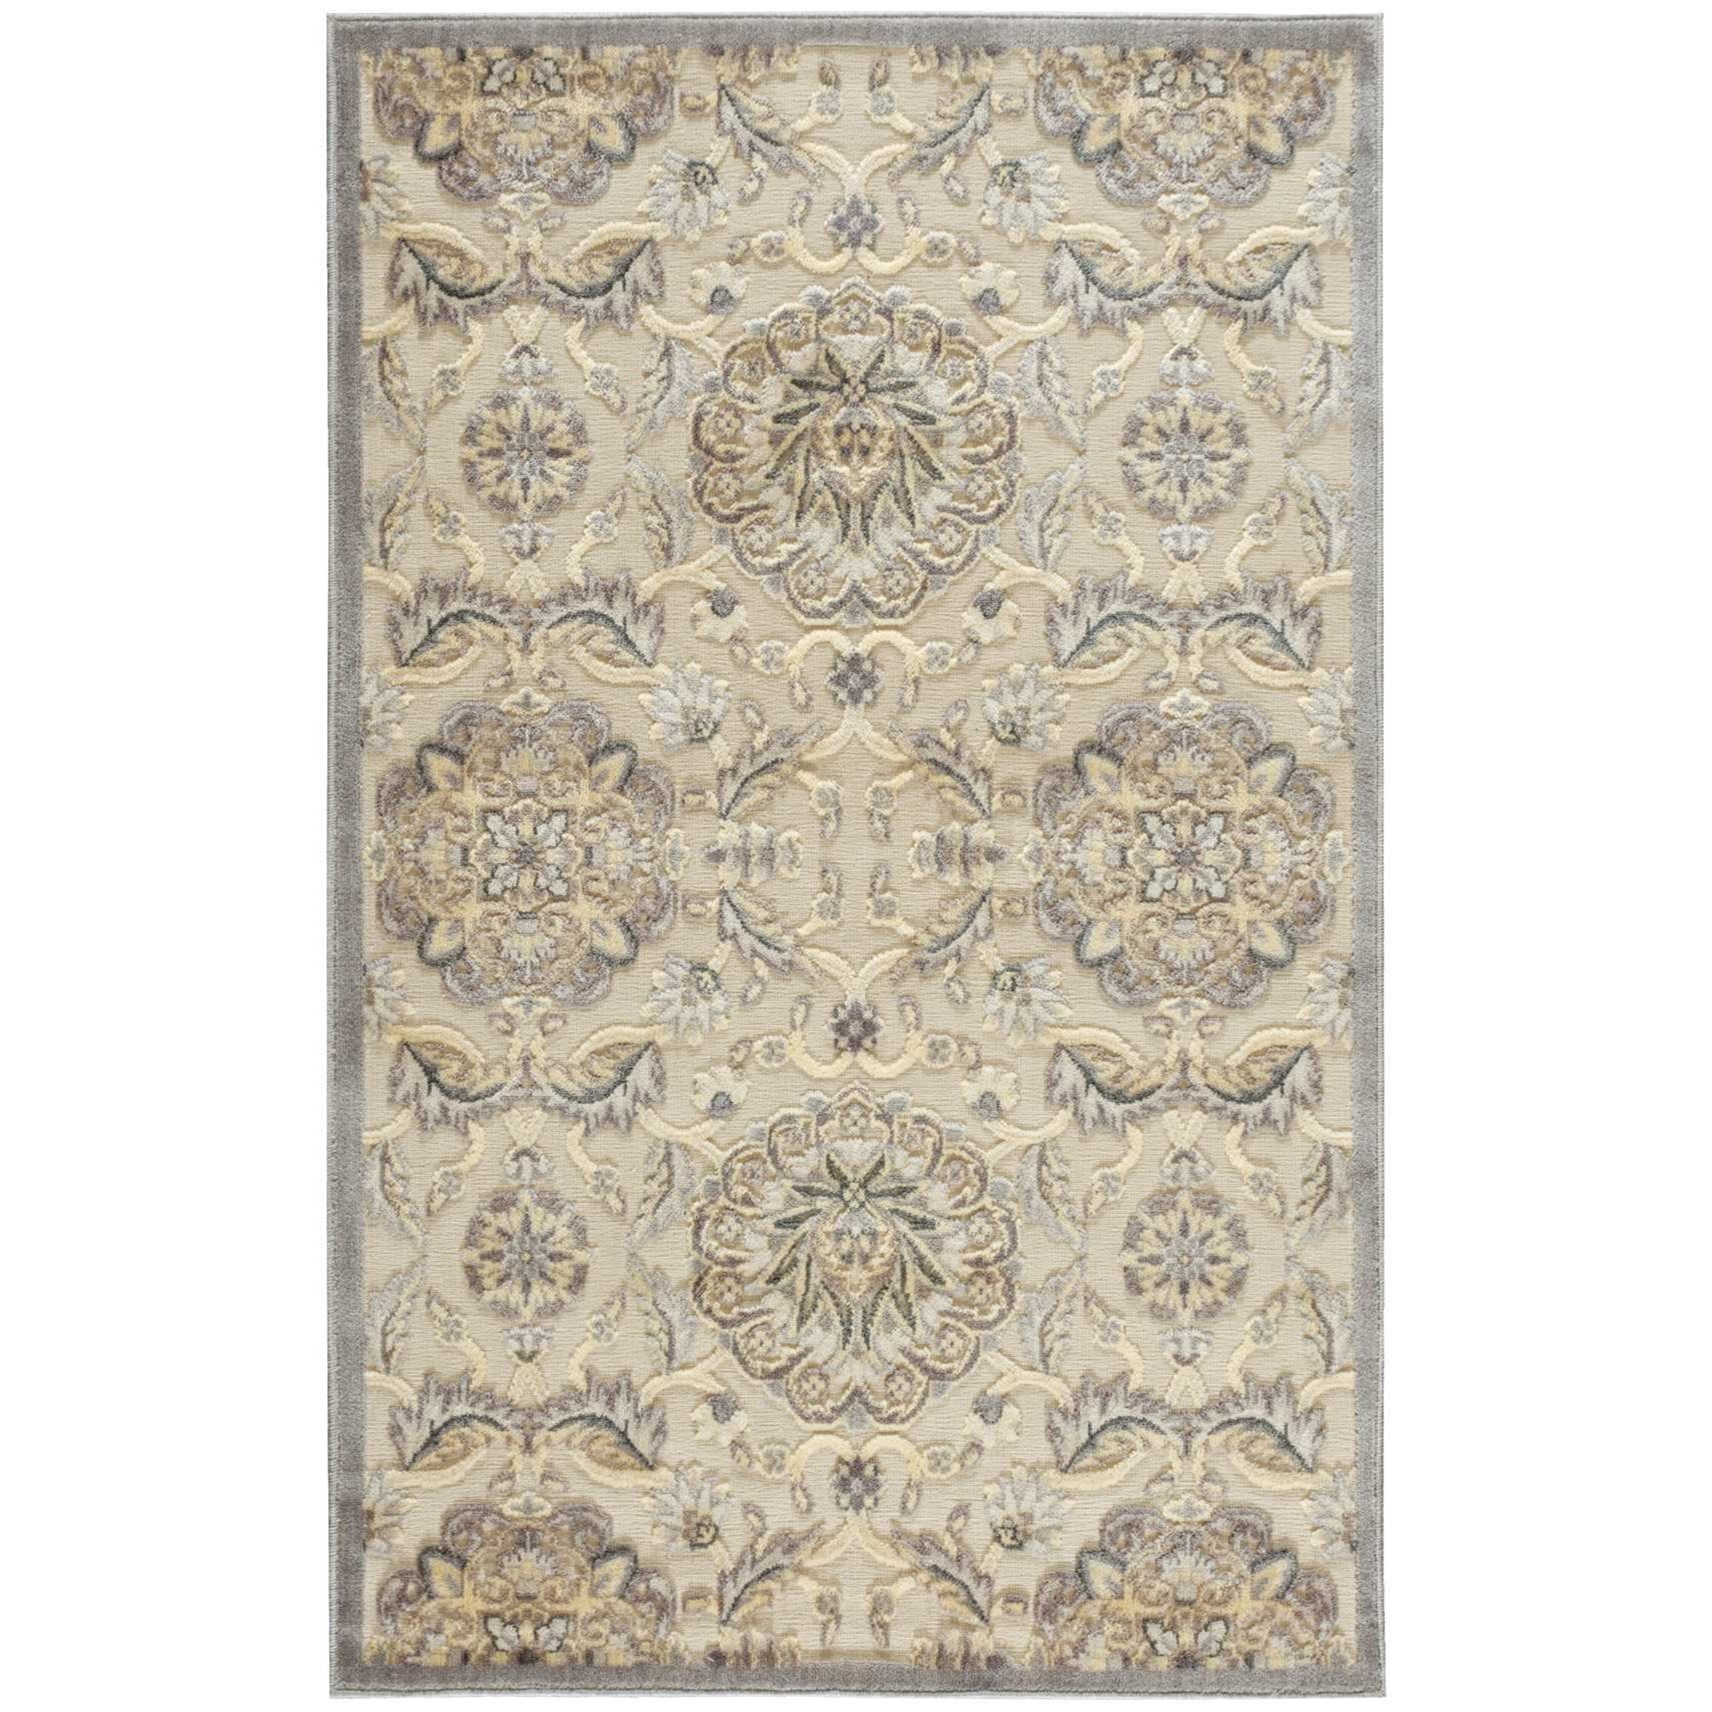 """Nourison Graphic Illusions 3'6"""" x 5'6"""" Ivory Rectangle Rug - Item Number: GIL12 IV 36X56"""